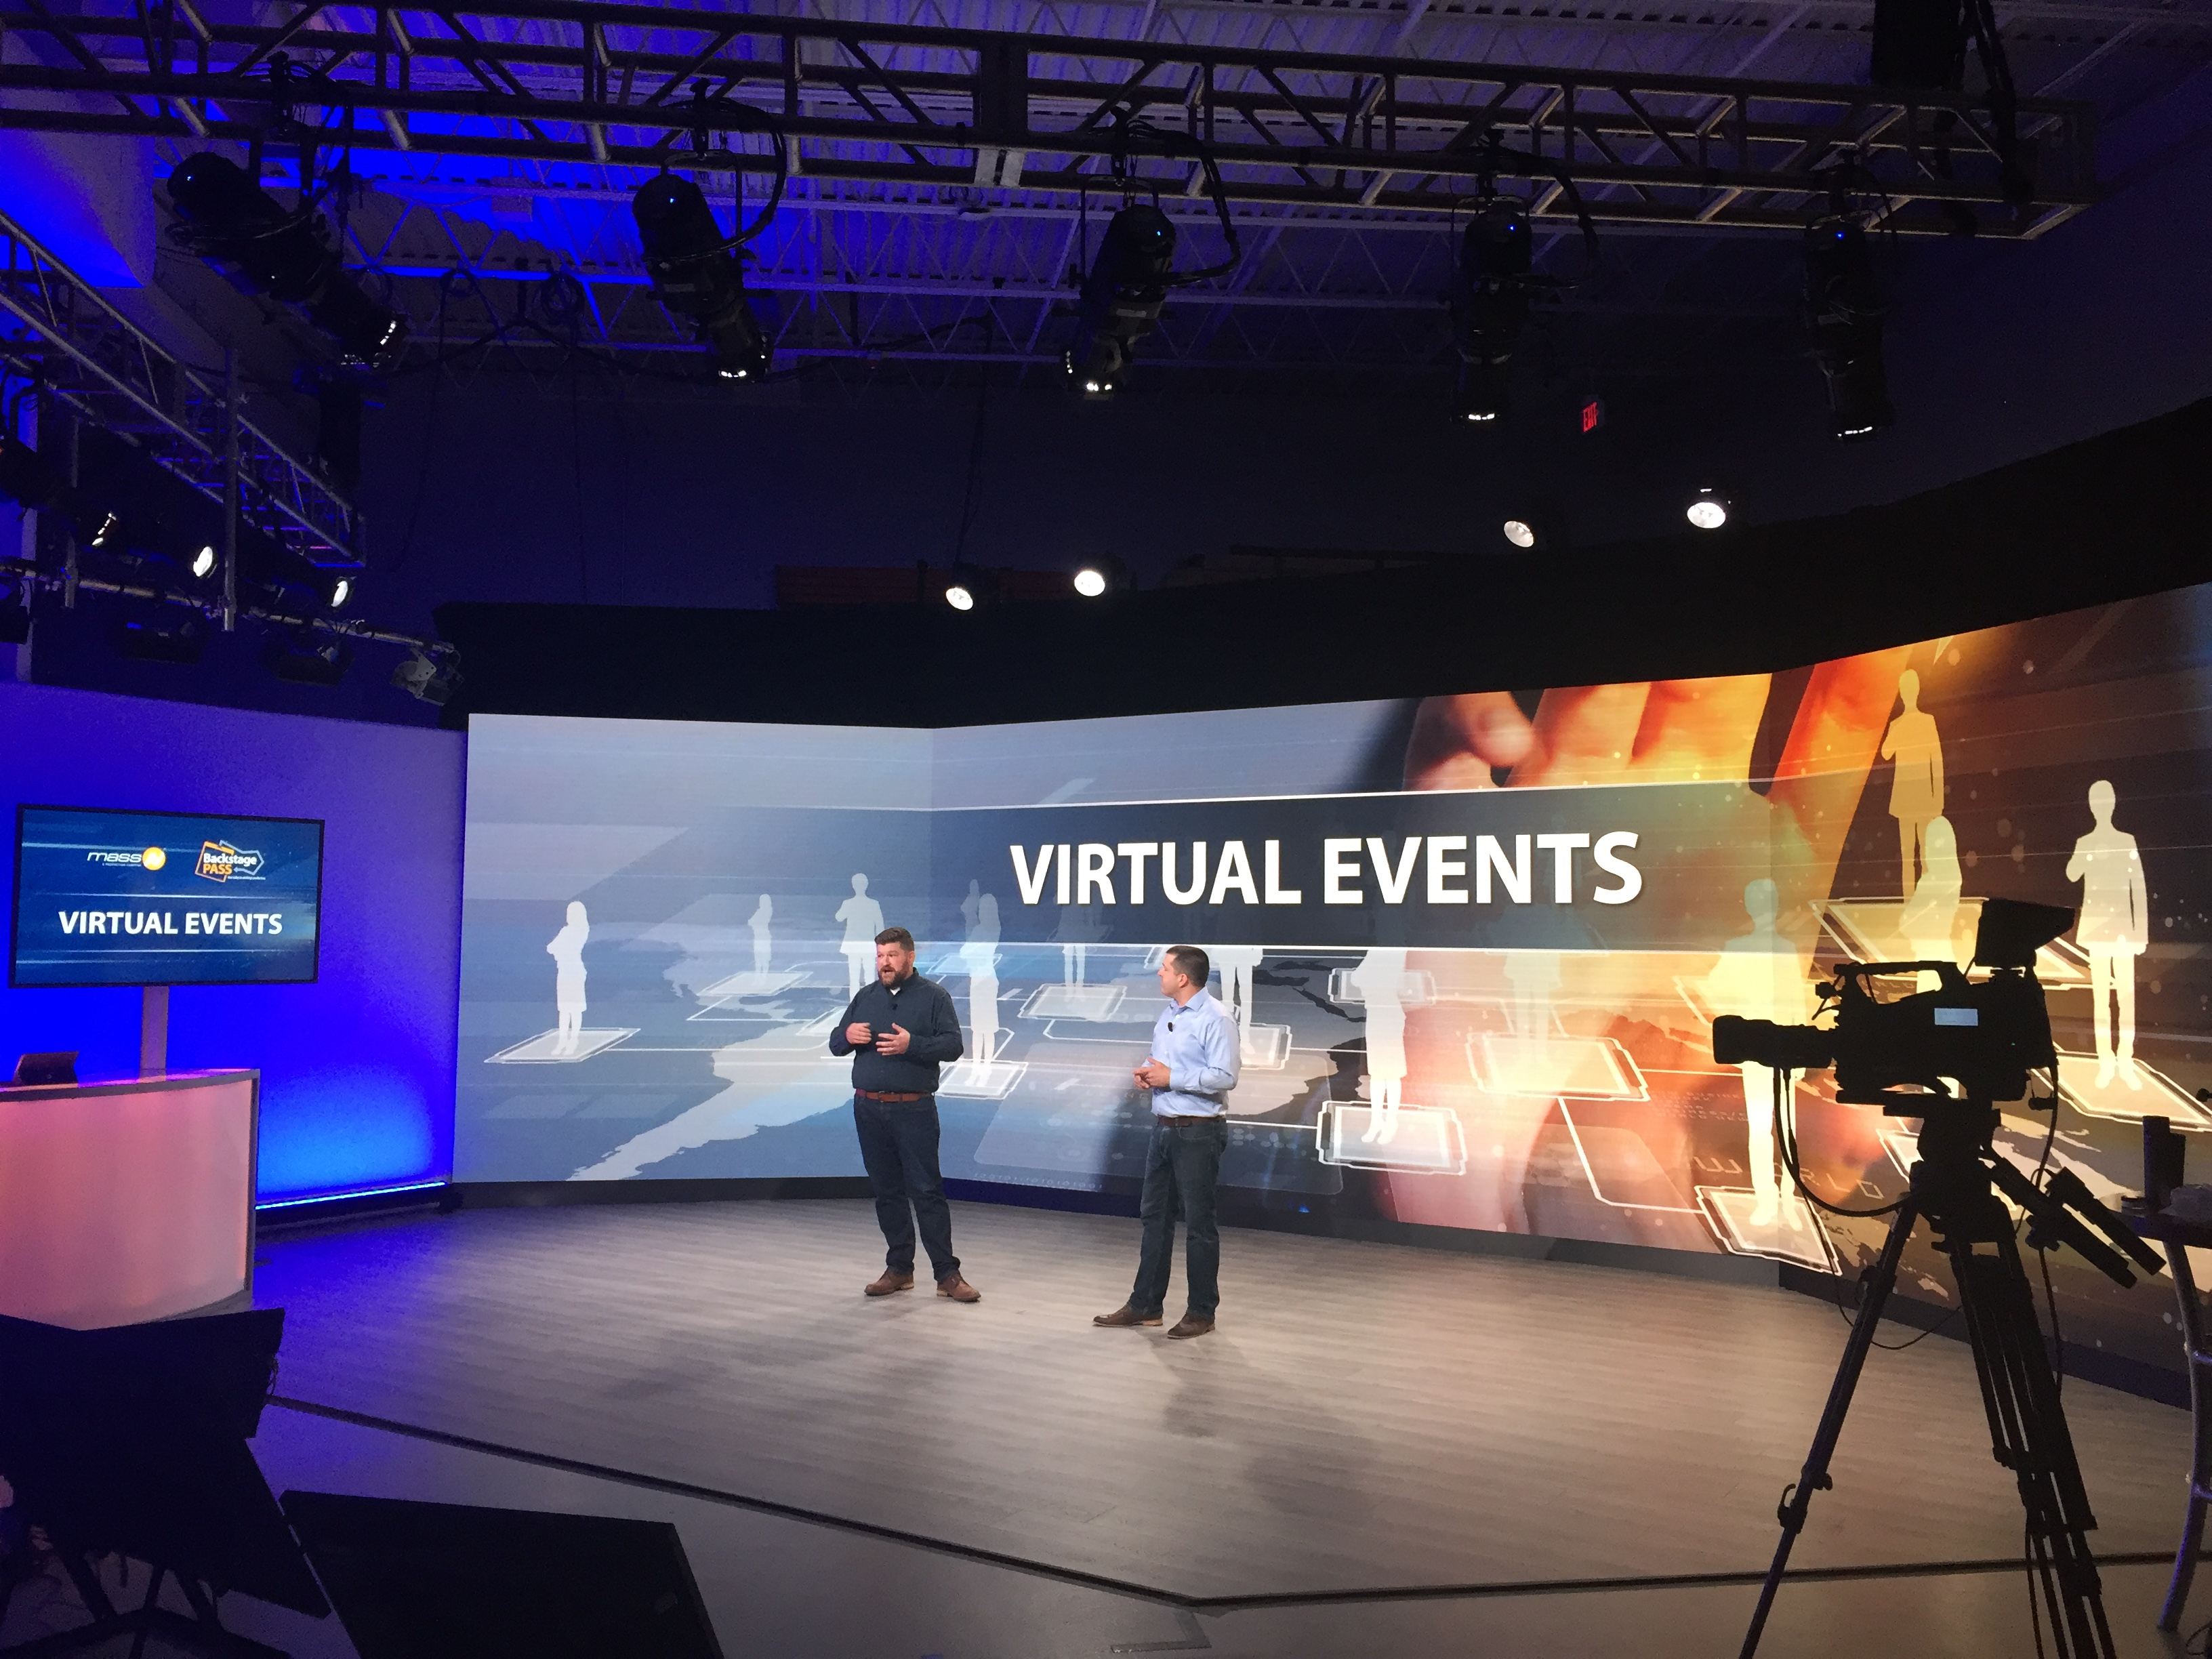 What Are Virtual Events?